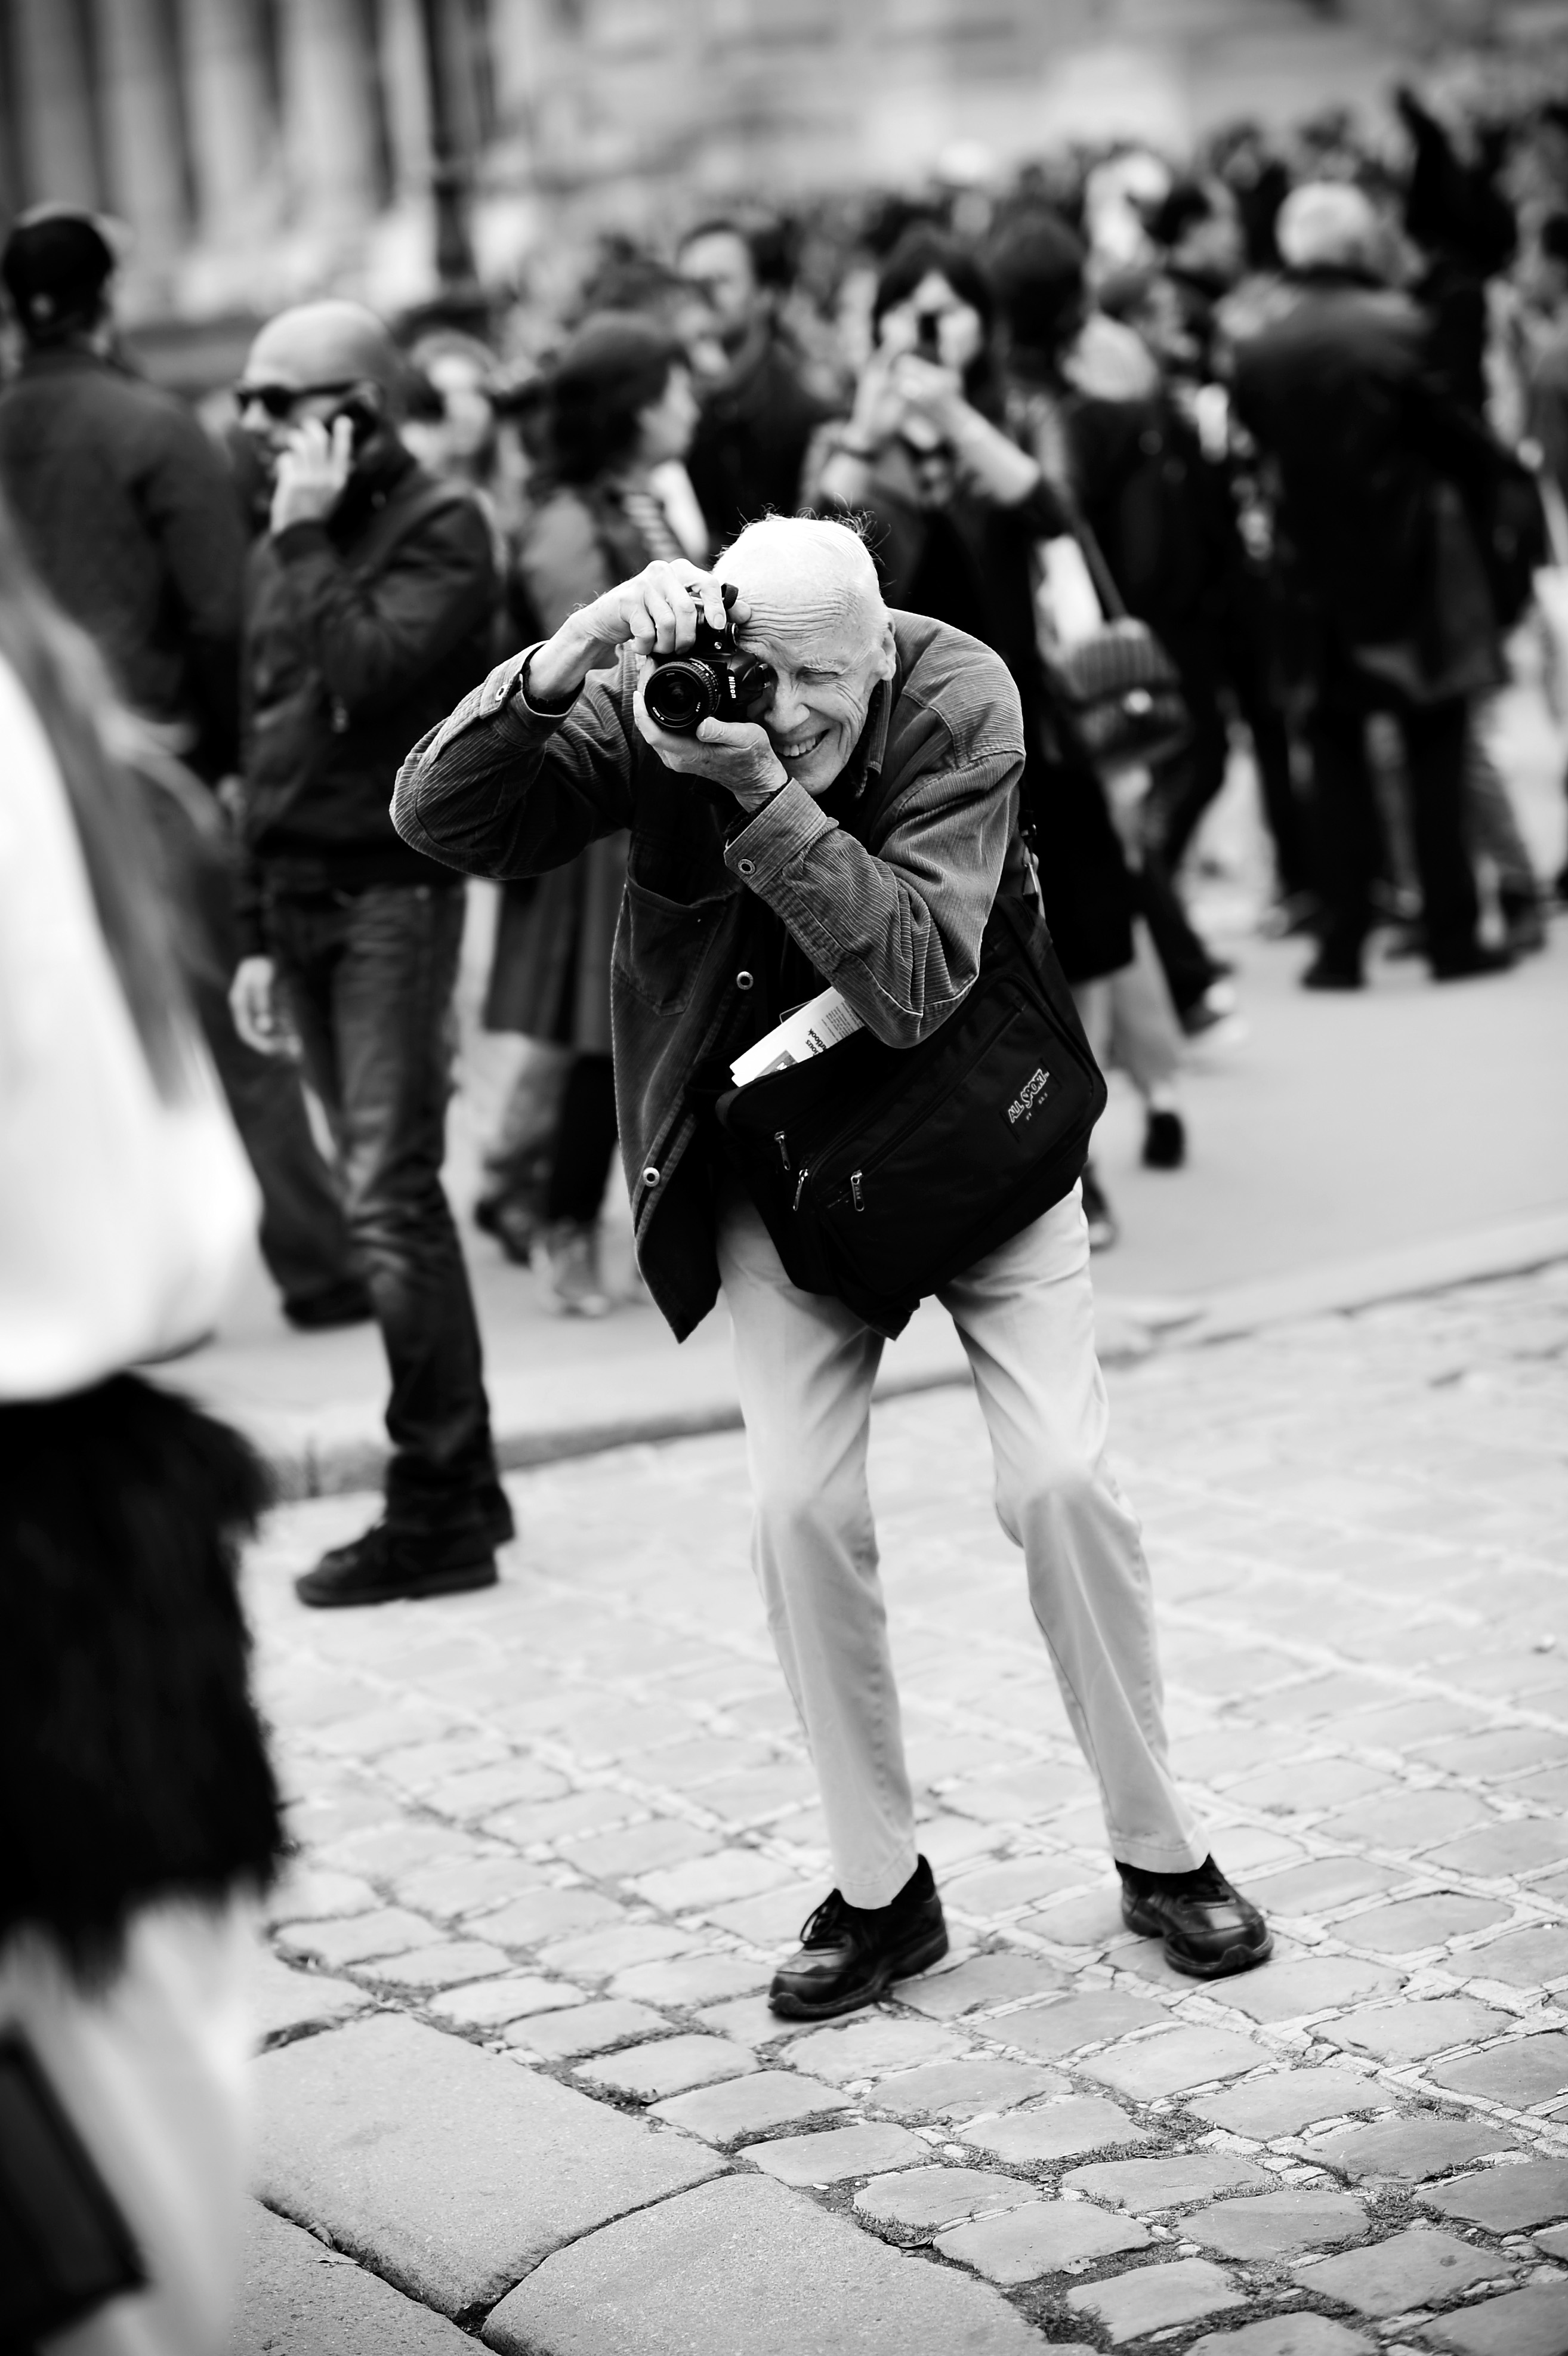 Photographer Bill Cunningham working during Paris Fashion Week Womenswear Spring/Summer 2014 on October 1, 2013 in Paris, France.